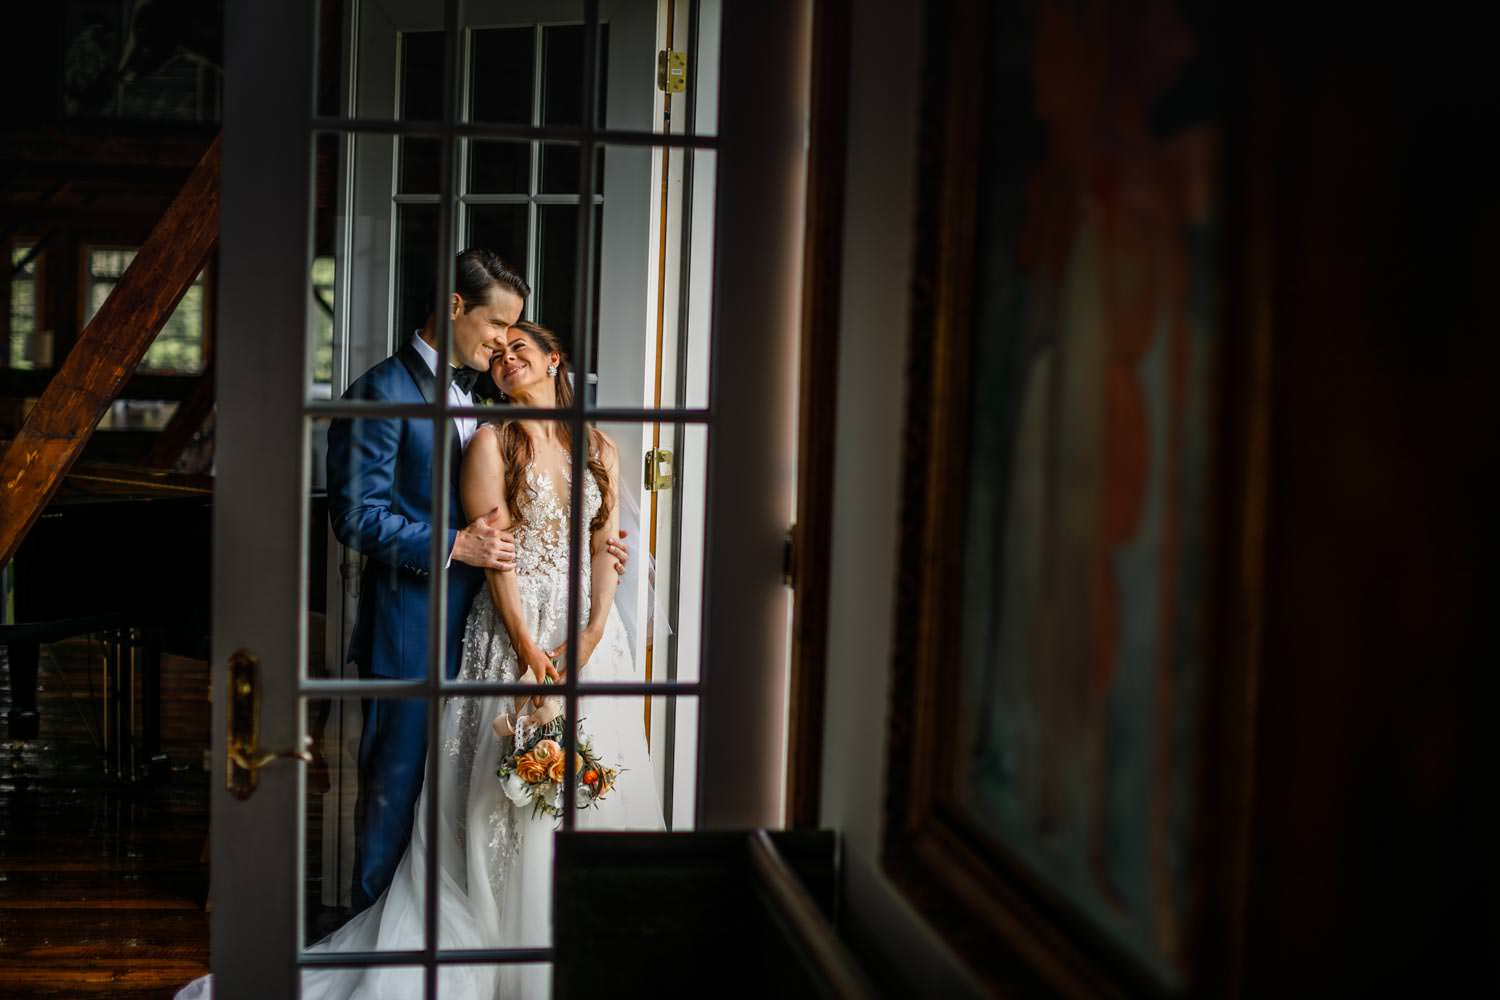 full length photograph of wedding couple embracing behind glass door